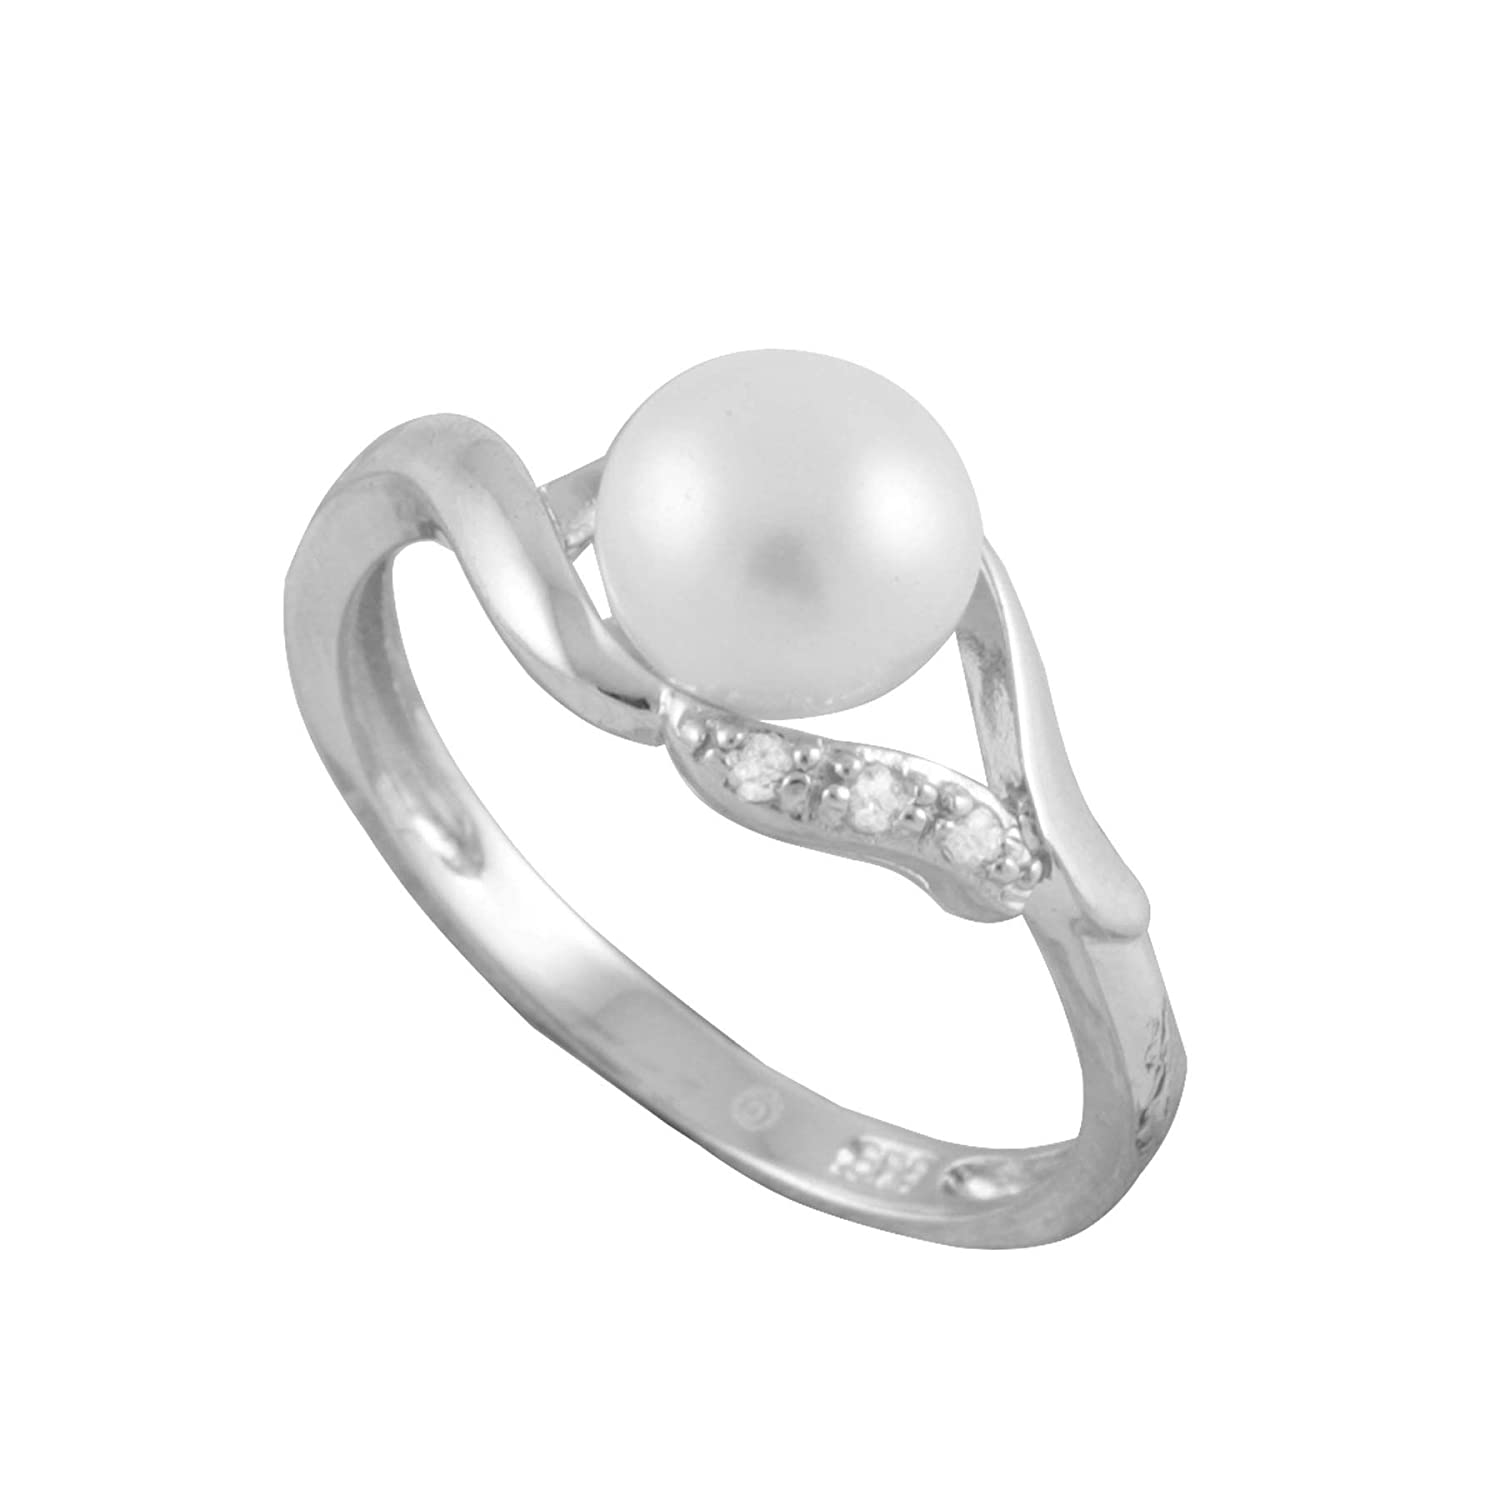 f7dfd748c Amazon.com: Handpicked AA Quality 7-7.5mm Button White Freshwater Cultured  Pearl Split-shank 925 Sterling Silver Ring: Jewelry